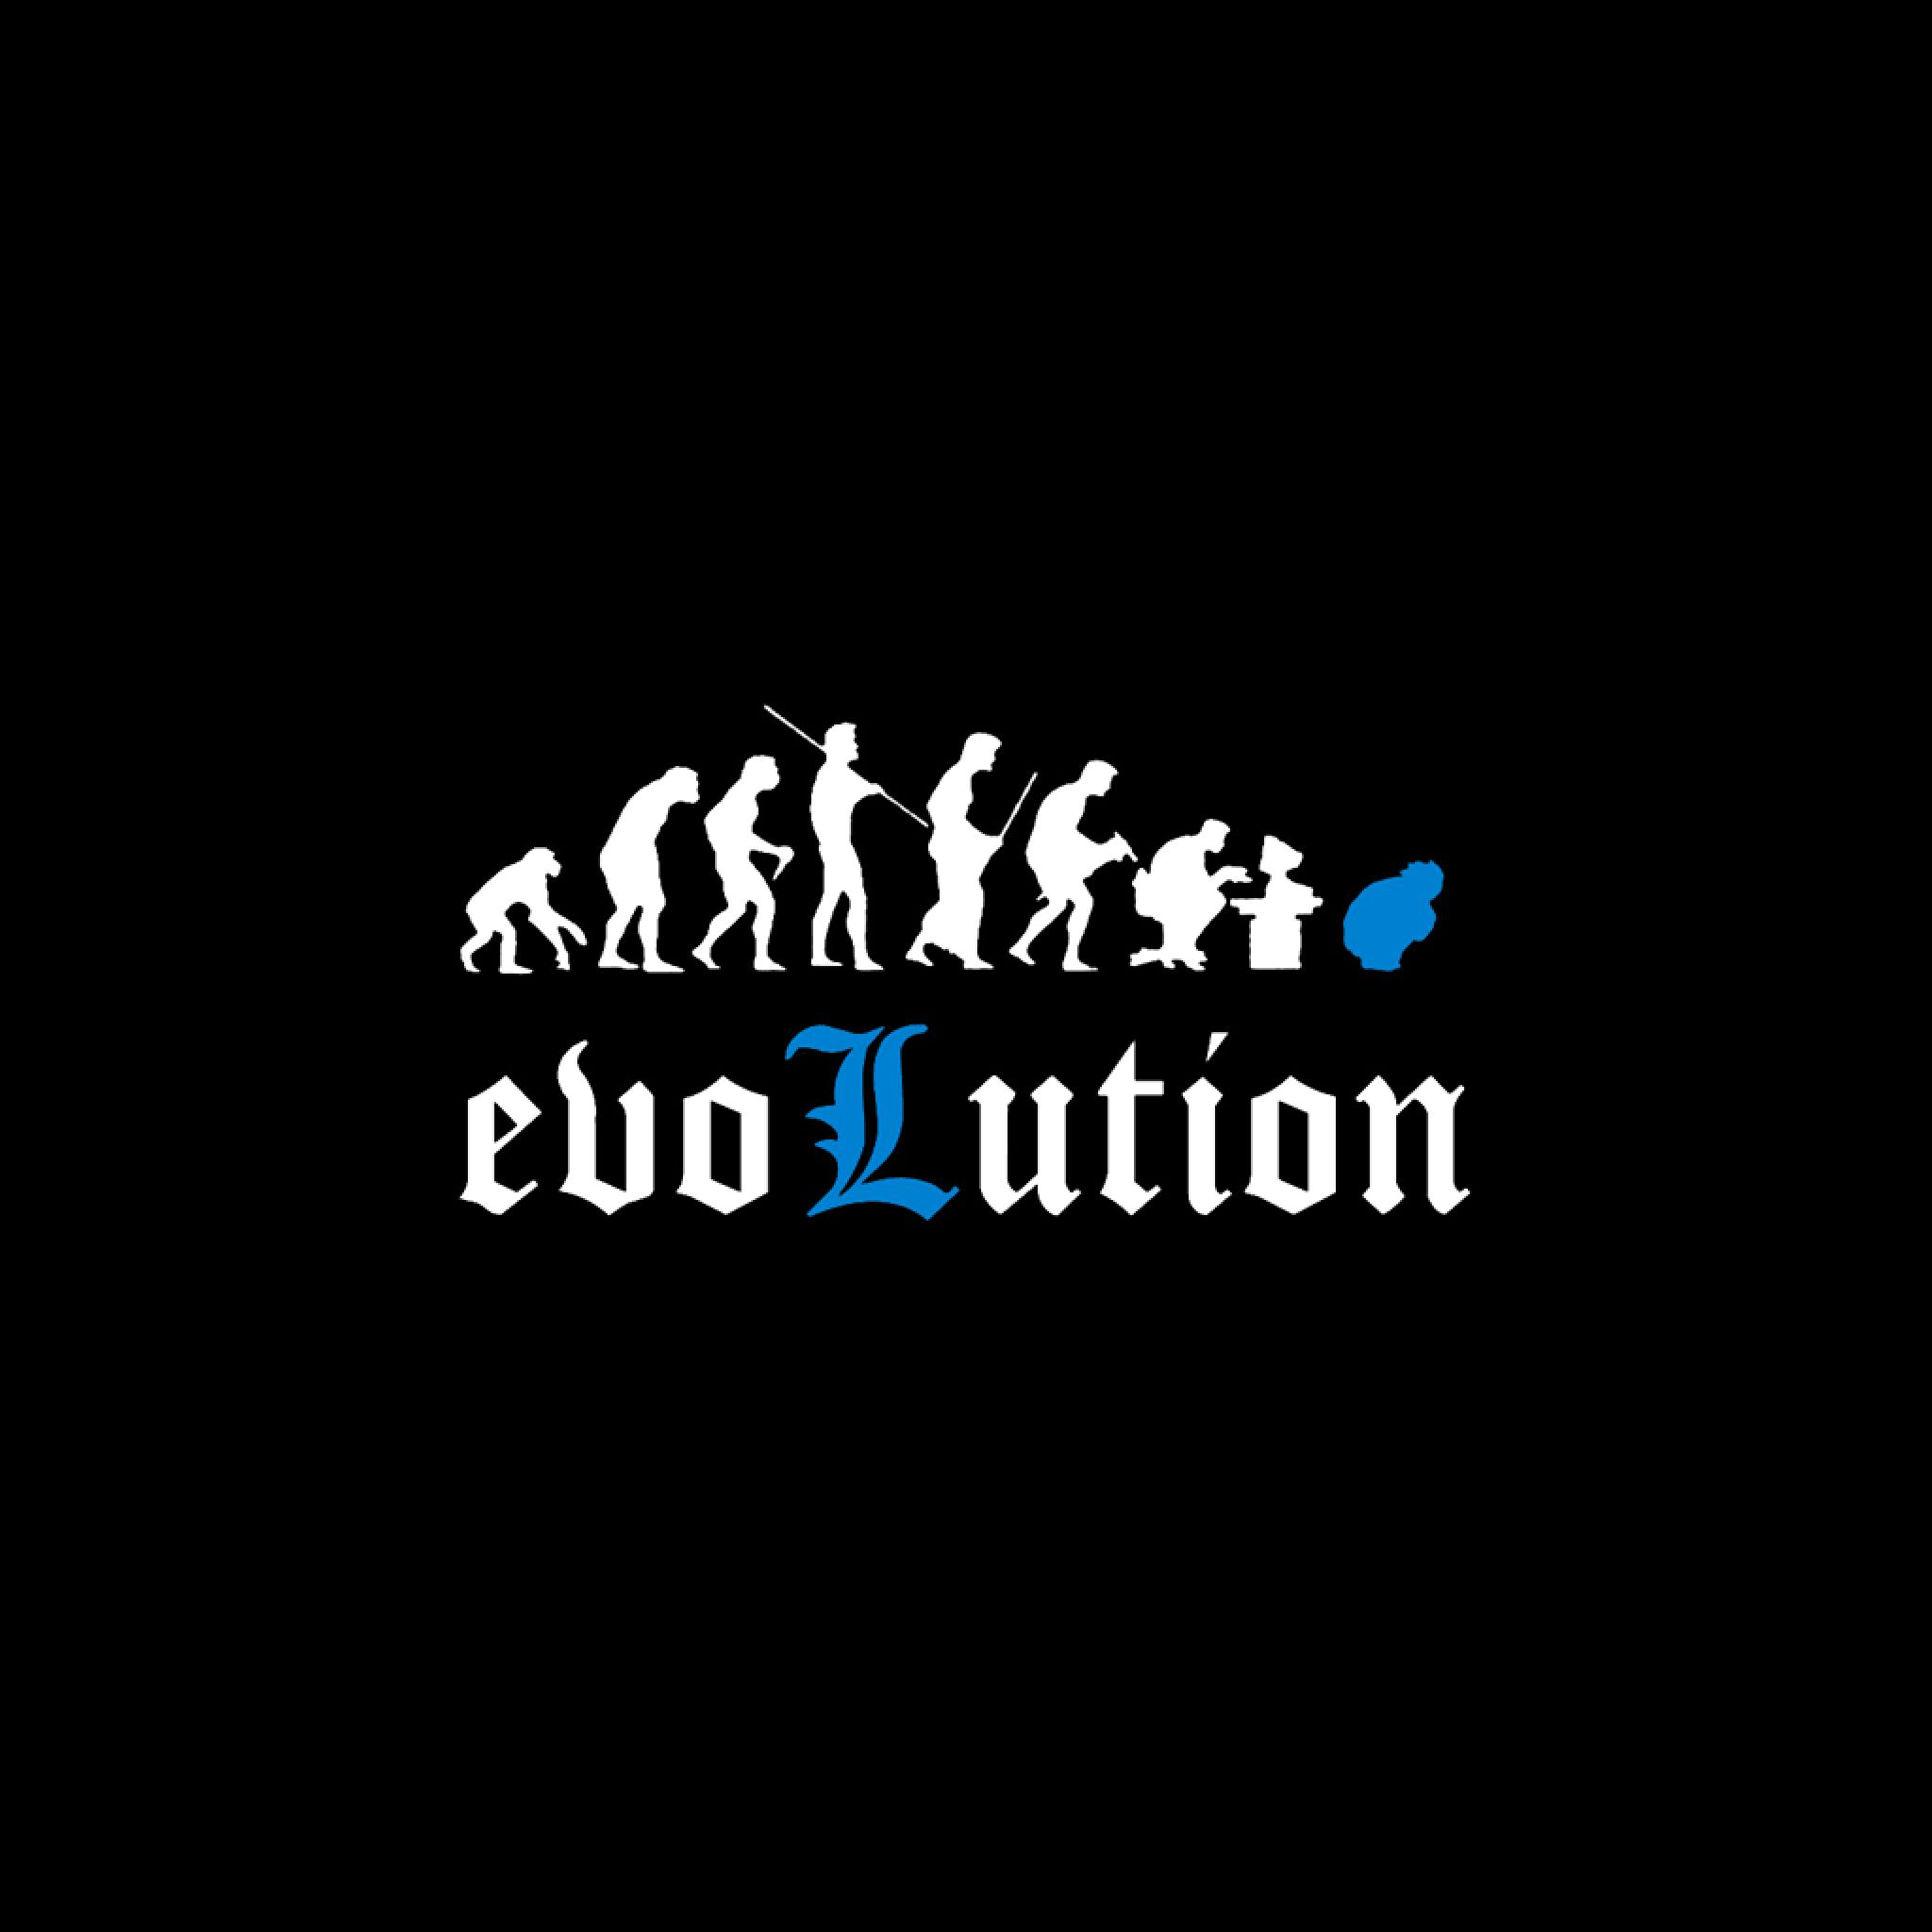 Funny Iphone Wallpapers: Human Evolution Wallpaper